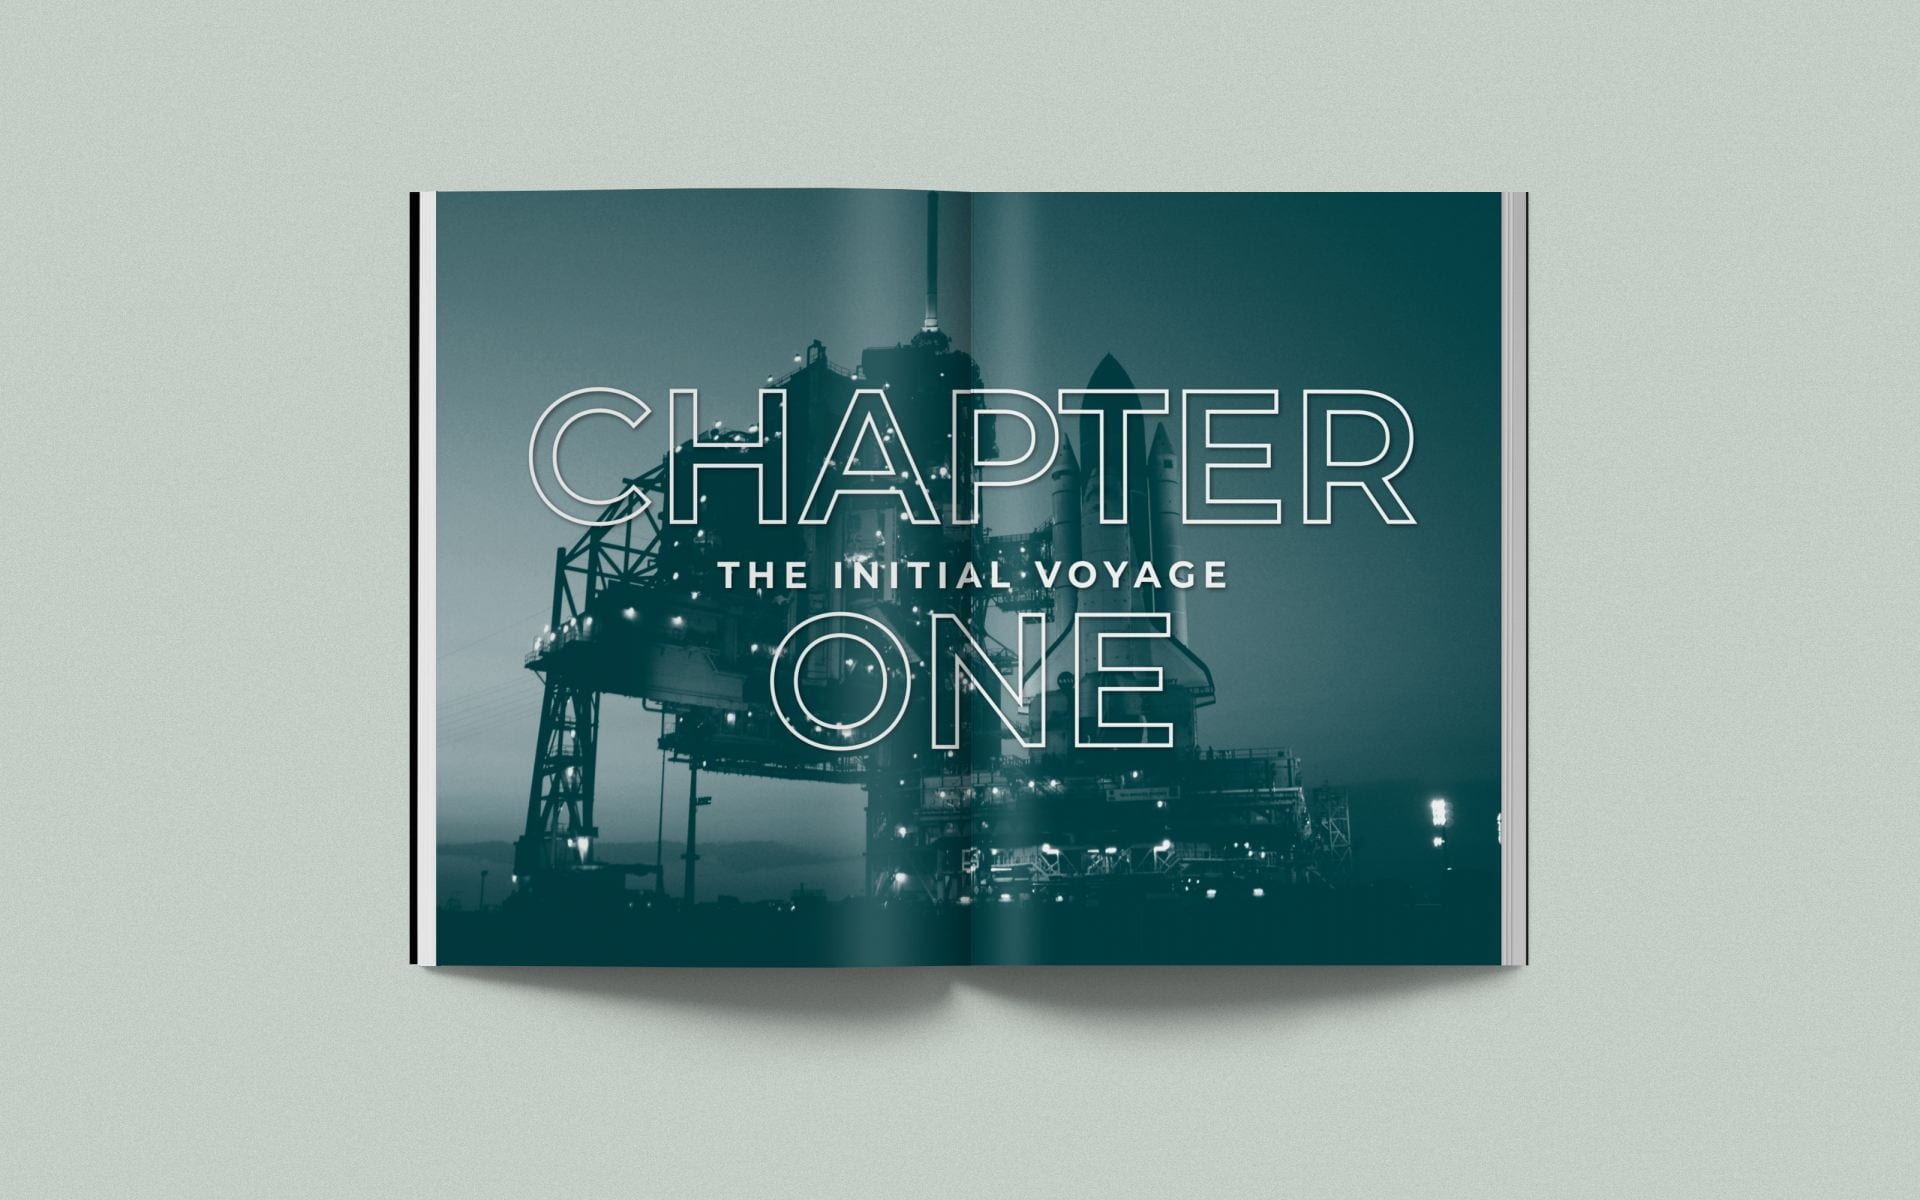 Chapter one 'The Initial Voyage' with background image of space launch.